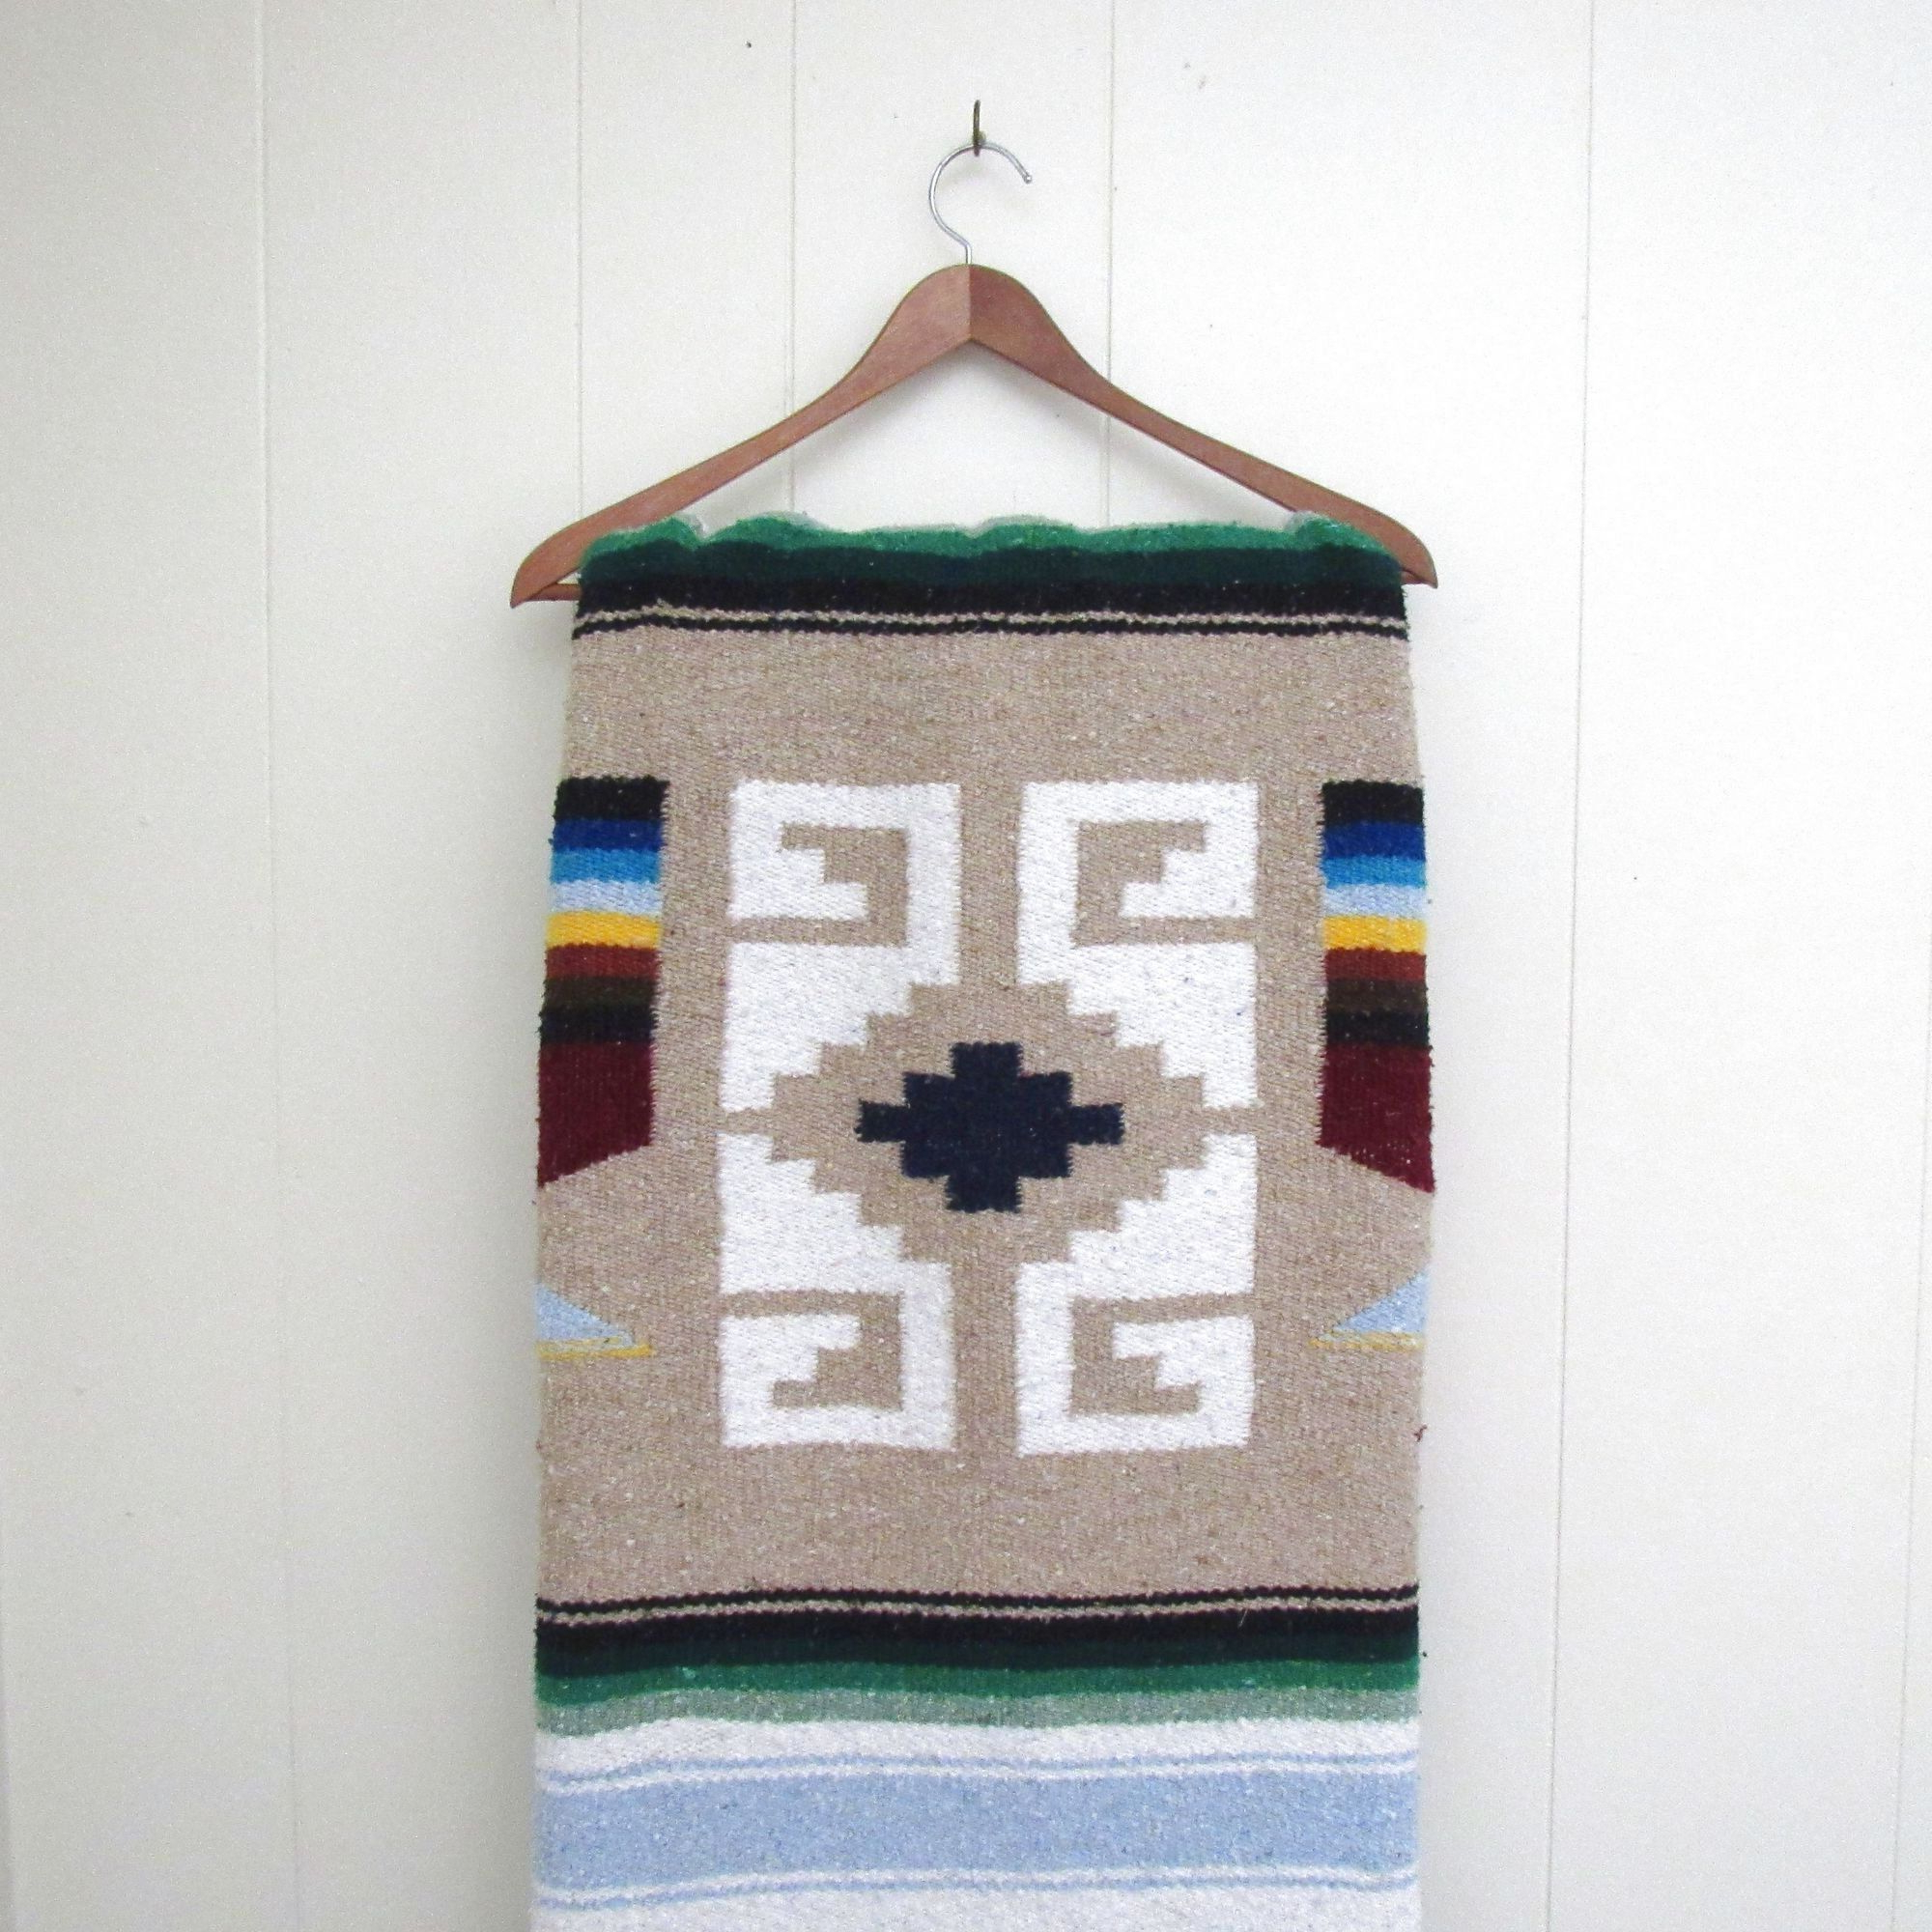 Blended Fabric Southwestern Bohemian Wall Hangings Inside Famous Vintage Mexican Blanket – 90s Woven Cotton Blend Southwest (View 16 of 20)